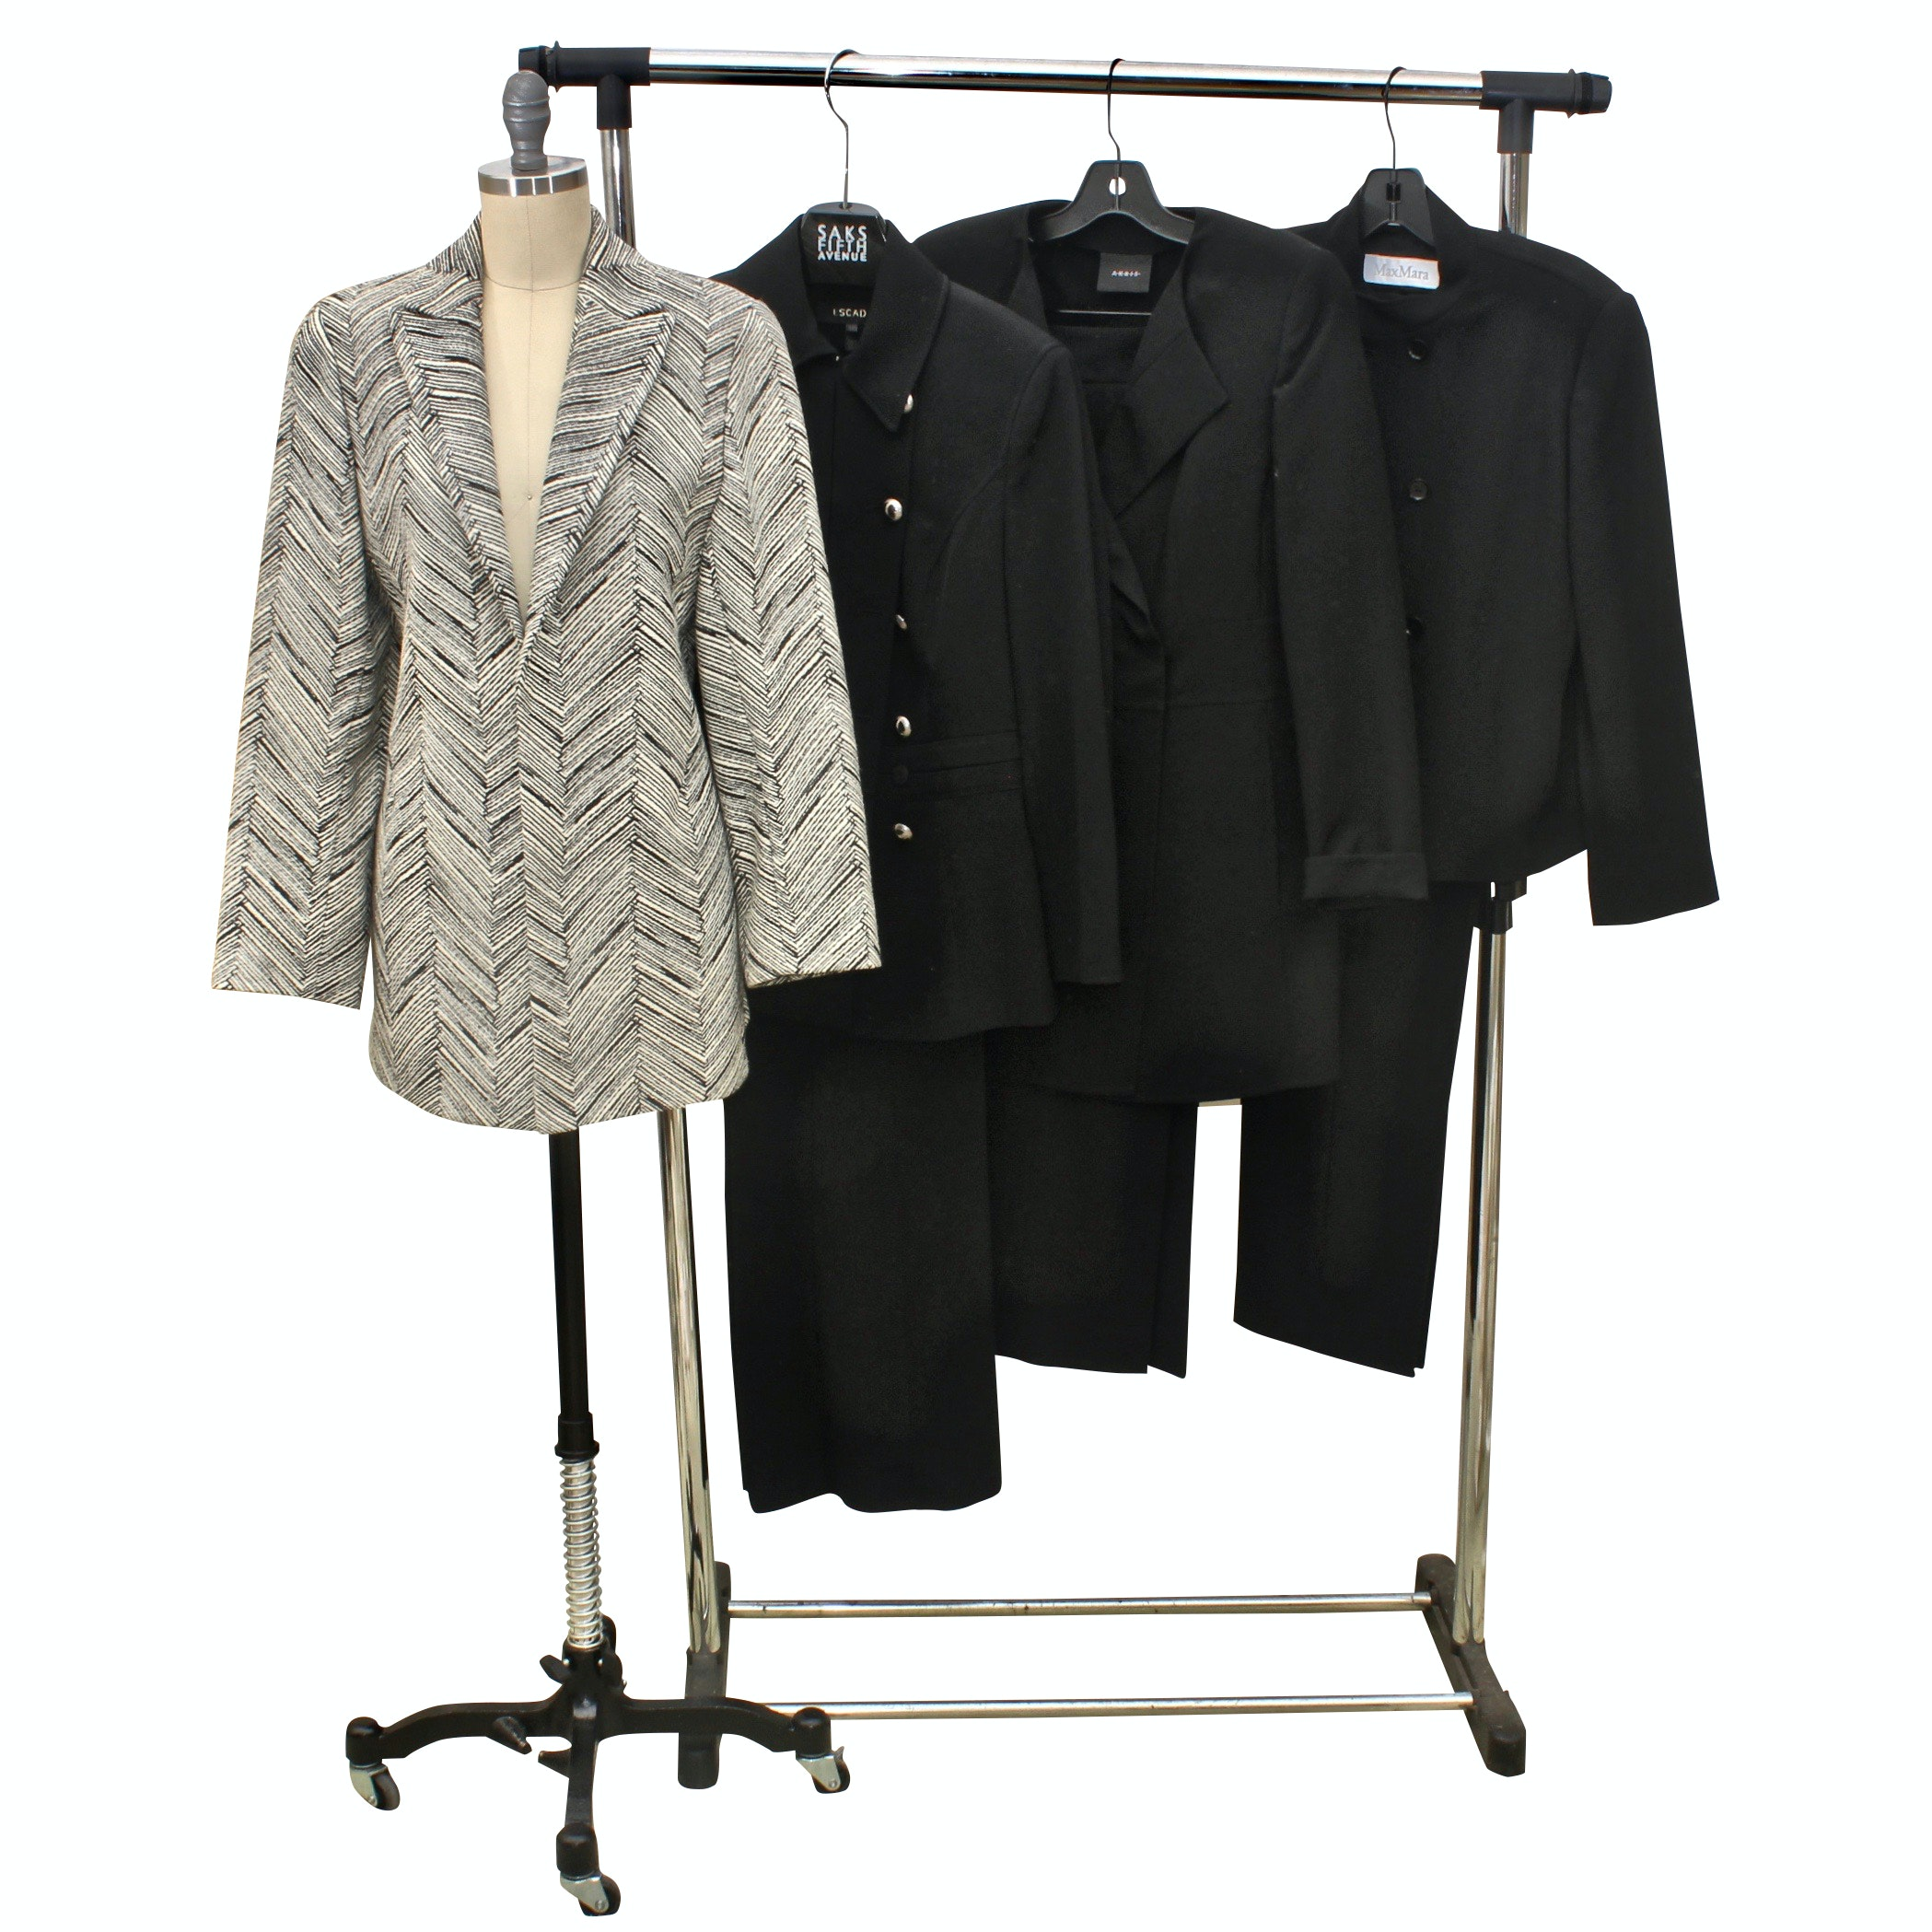 Women's Suit Jackets Including Valentino, Max Mara and Akris